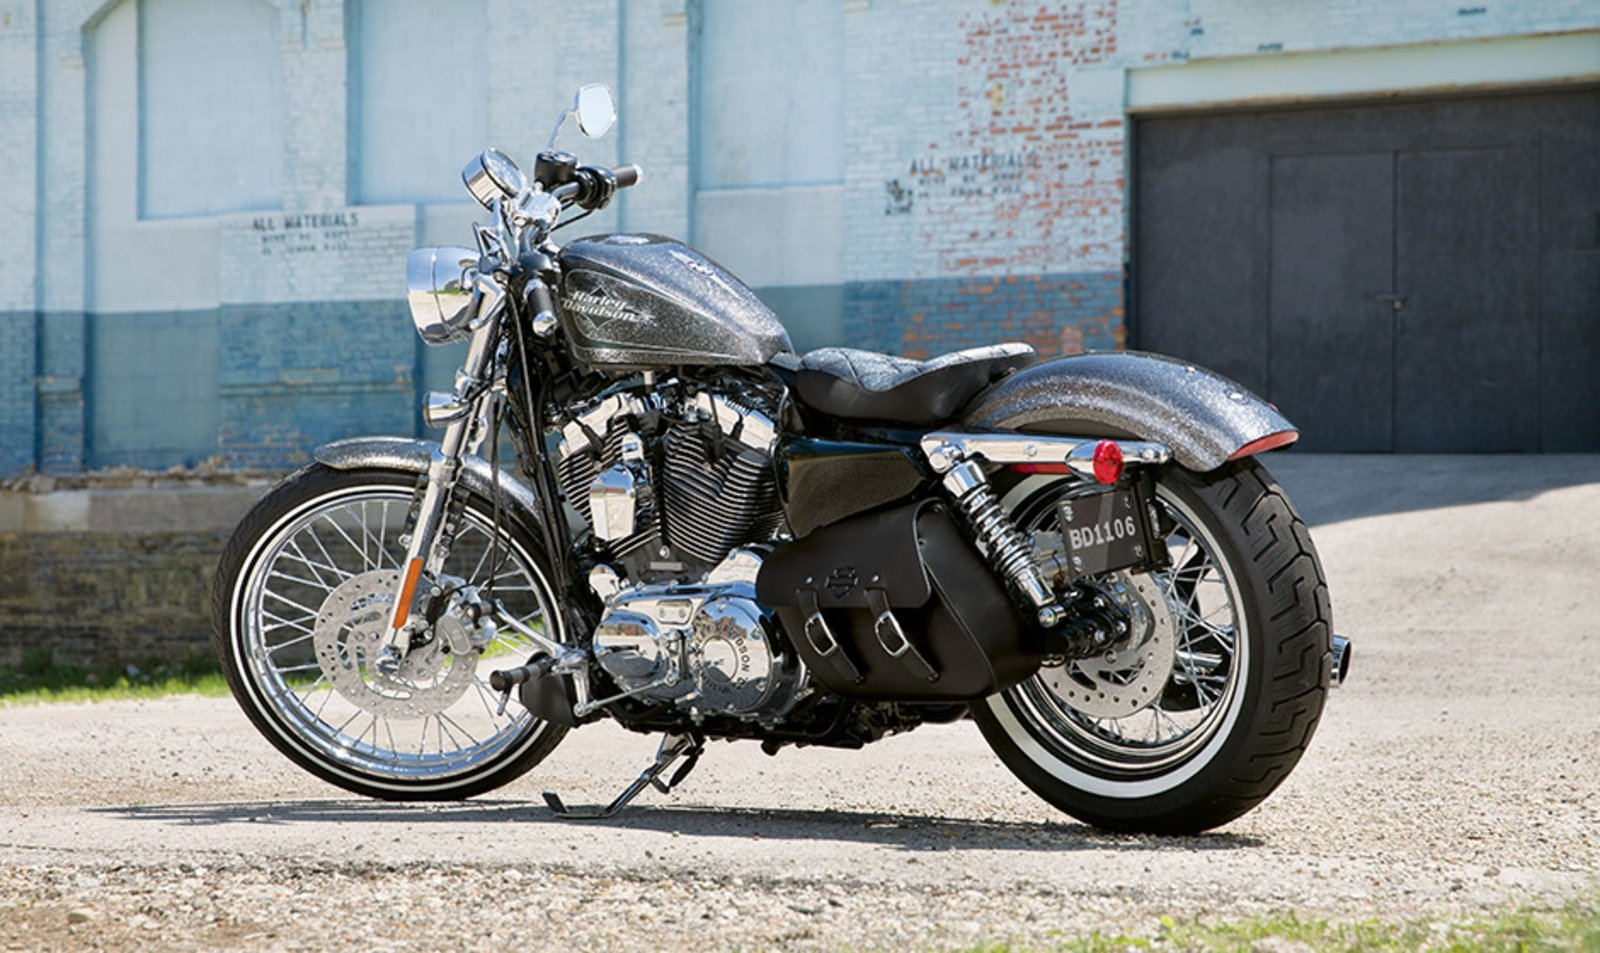 2014 Harley Davidson Seventy-Two Review - Top Speed